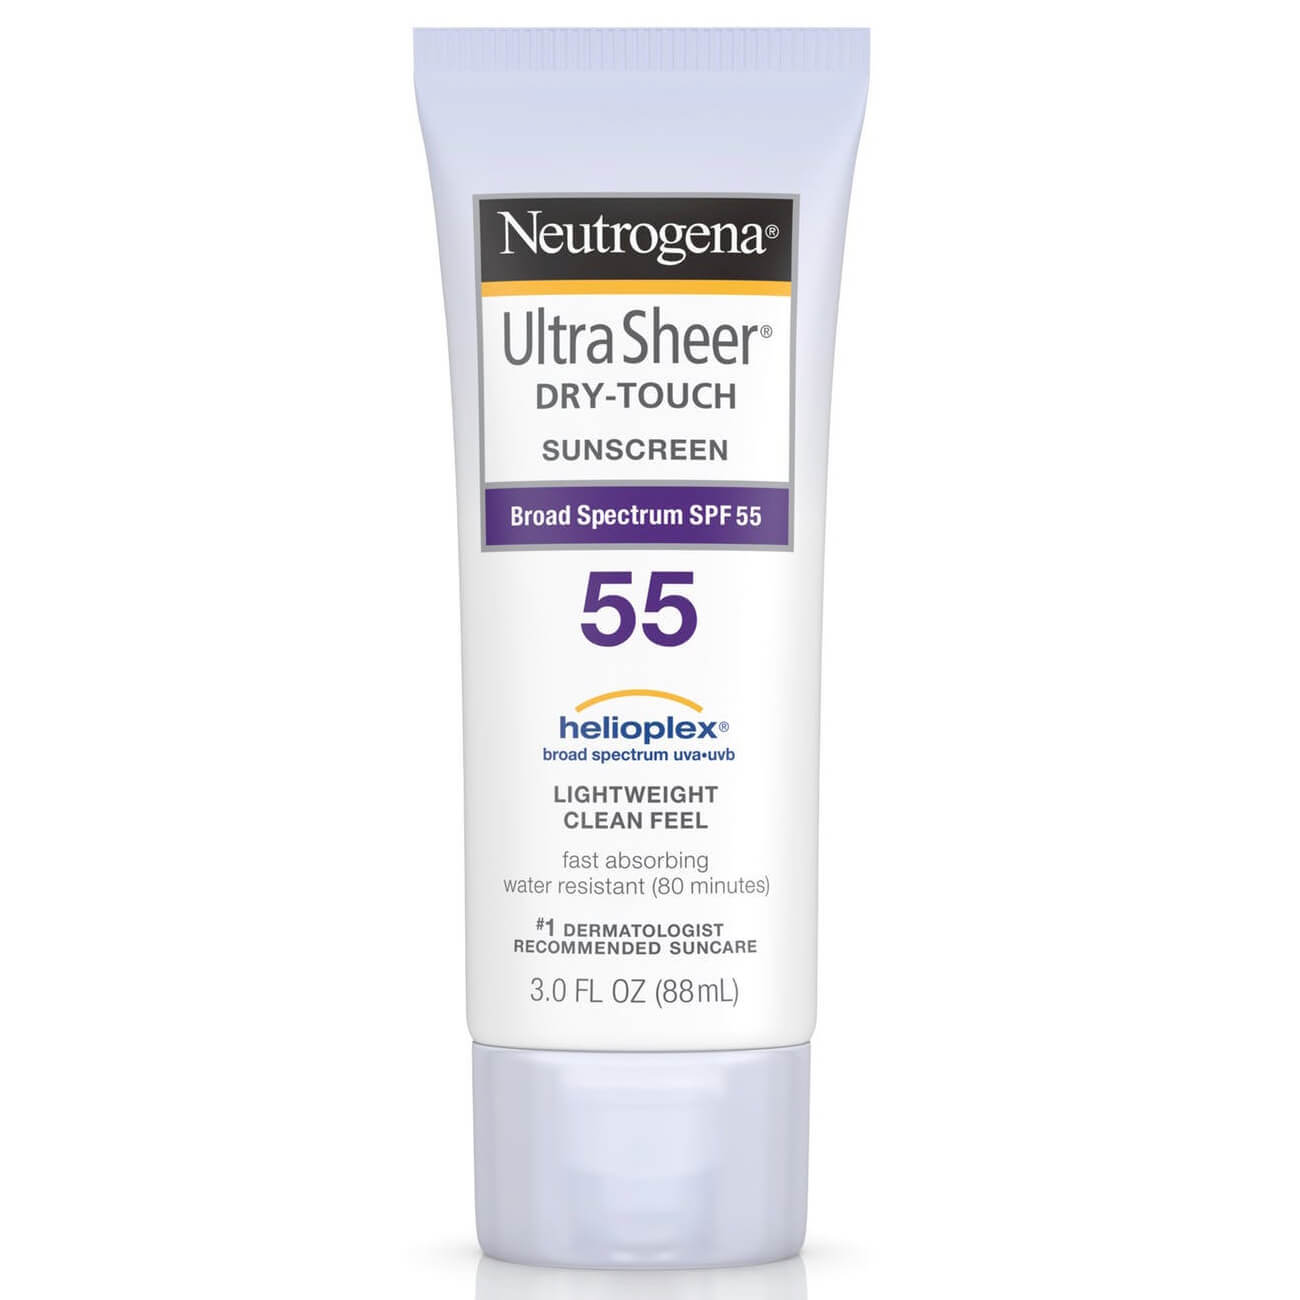 kem-chong-nang-neutrogena-ultra-sheer-dry-touch-sunscreen-spf55-88ml